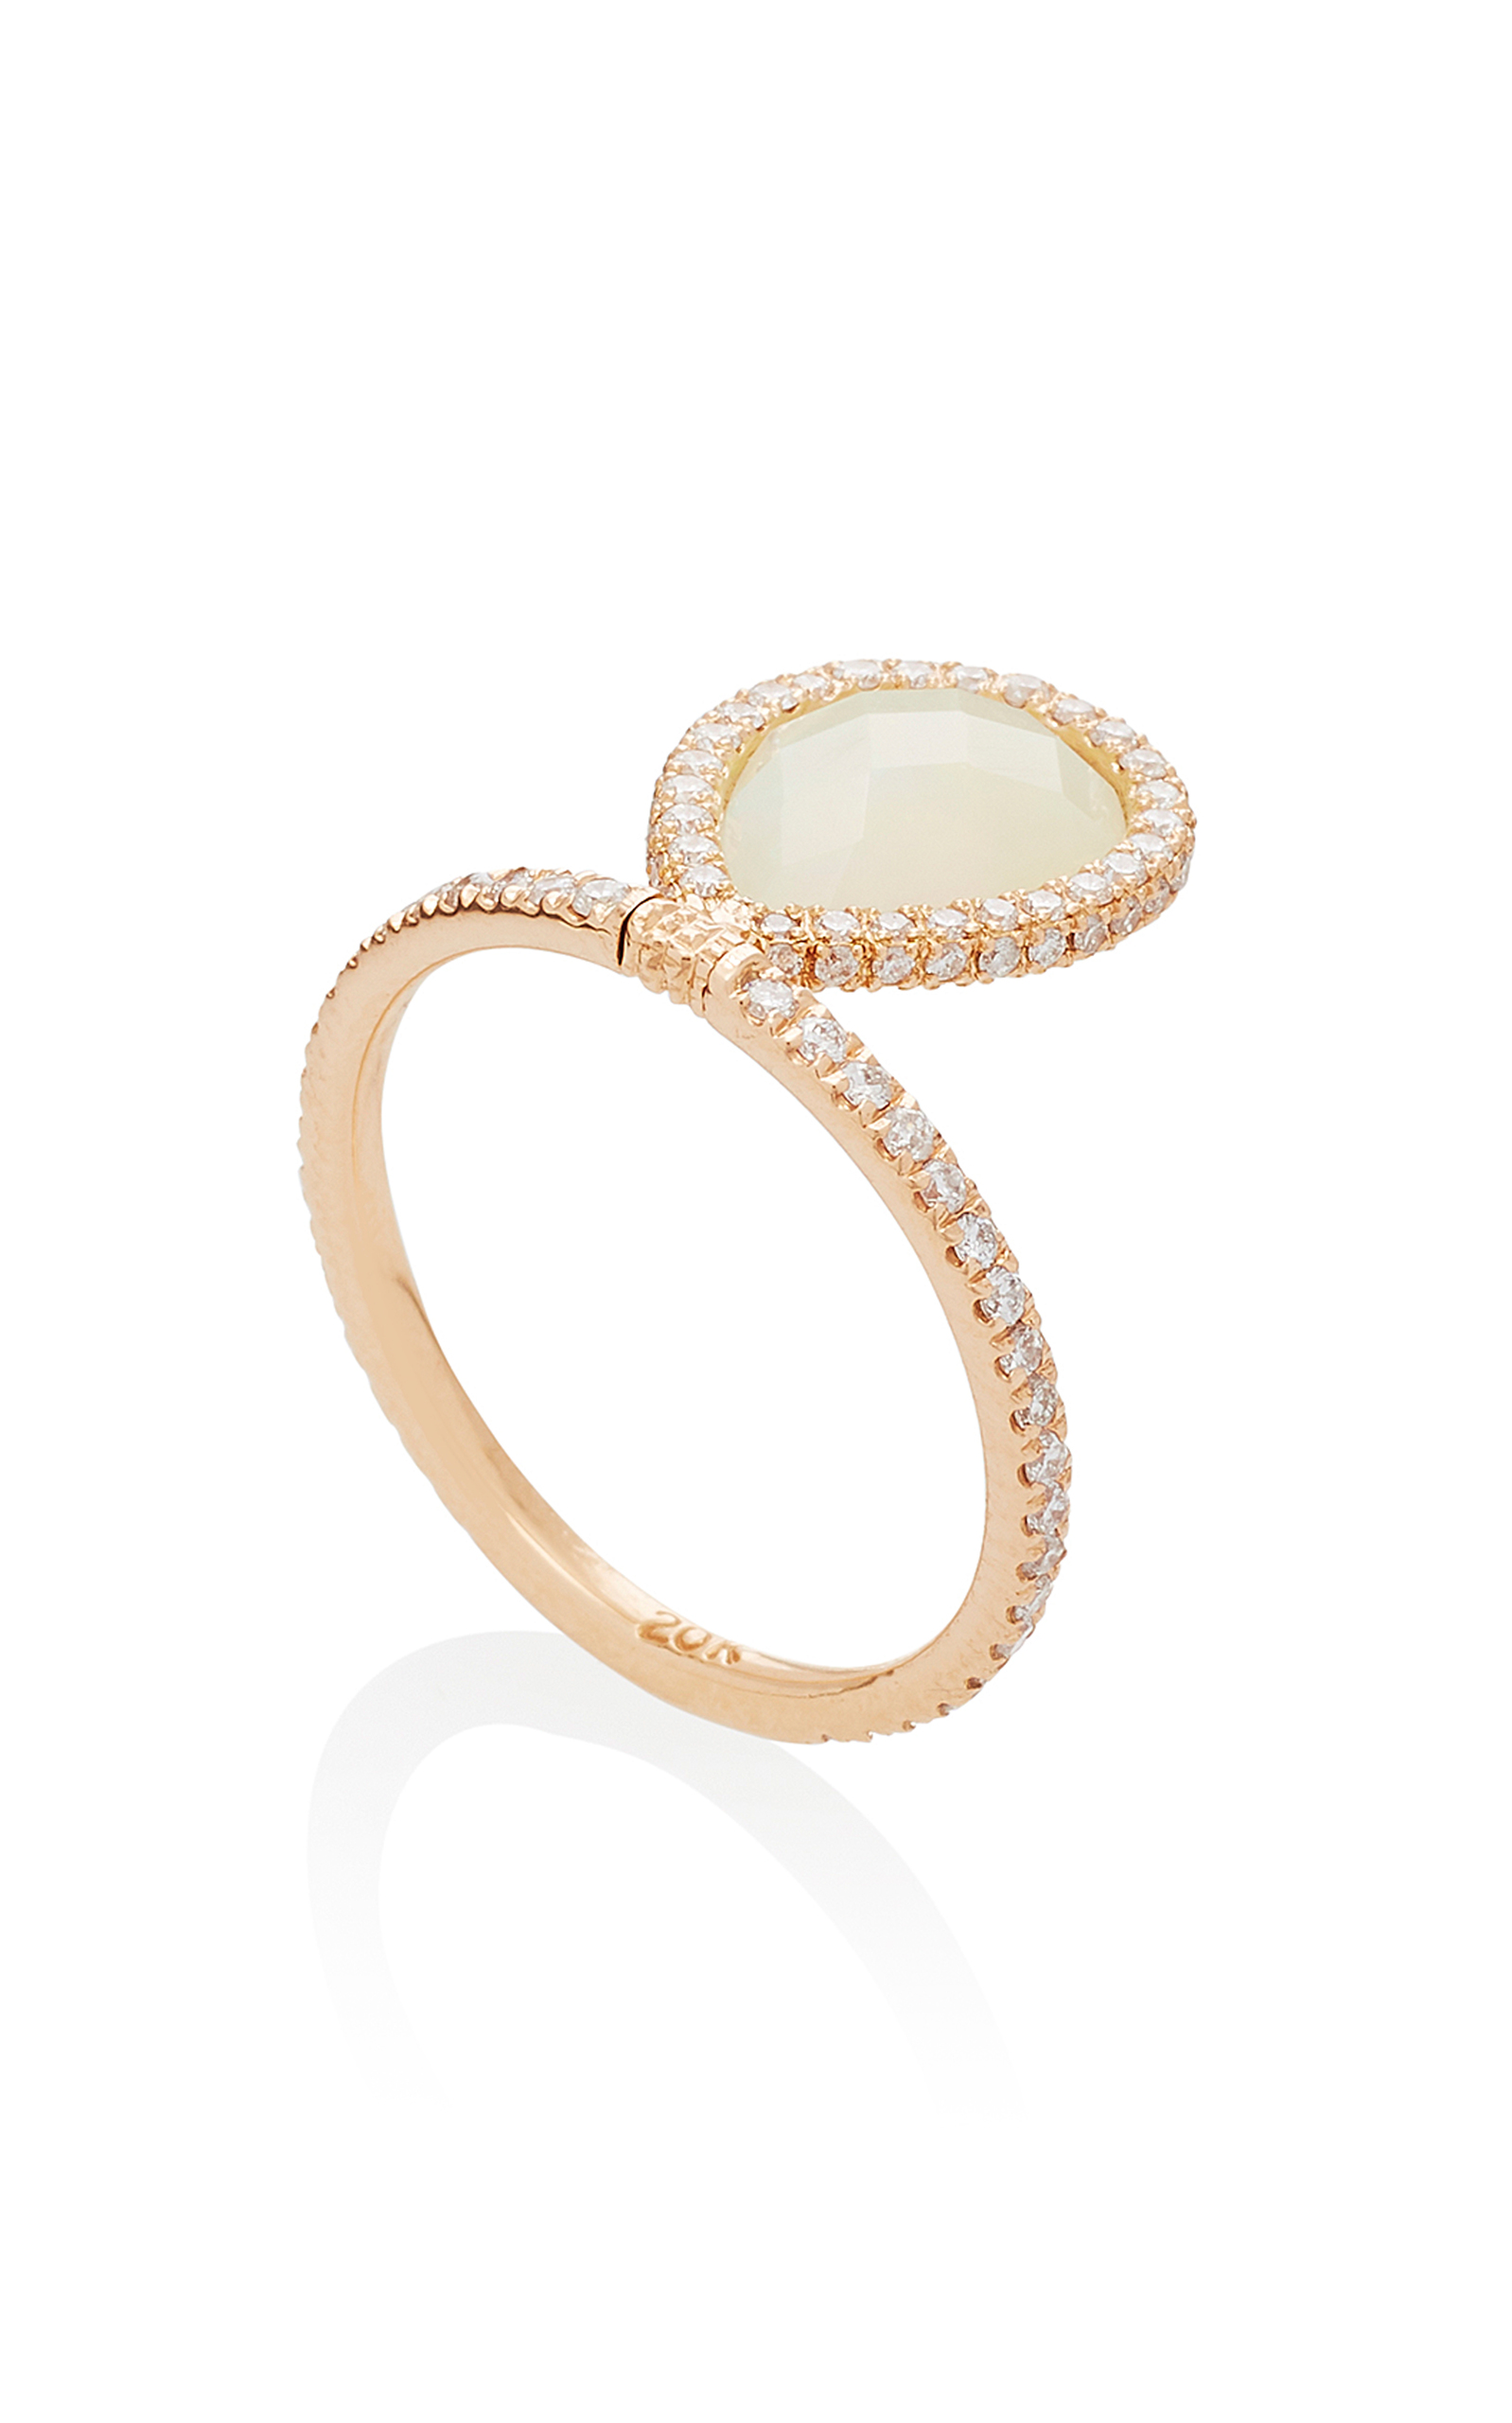 boutique en ring small crystal rings gold prsteni dorne phantasya